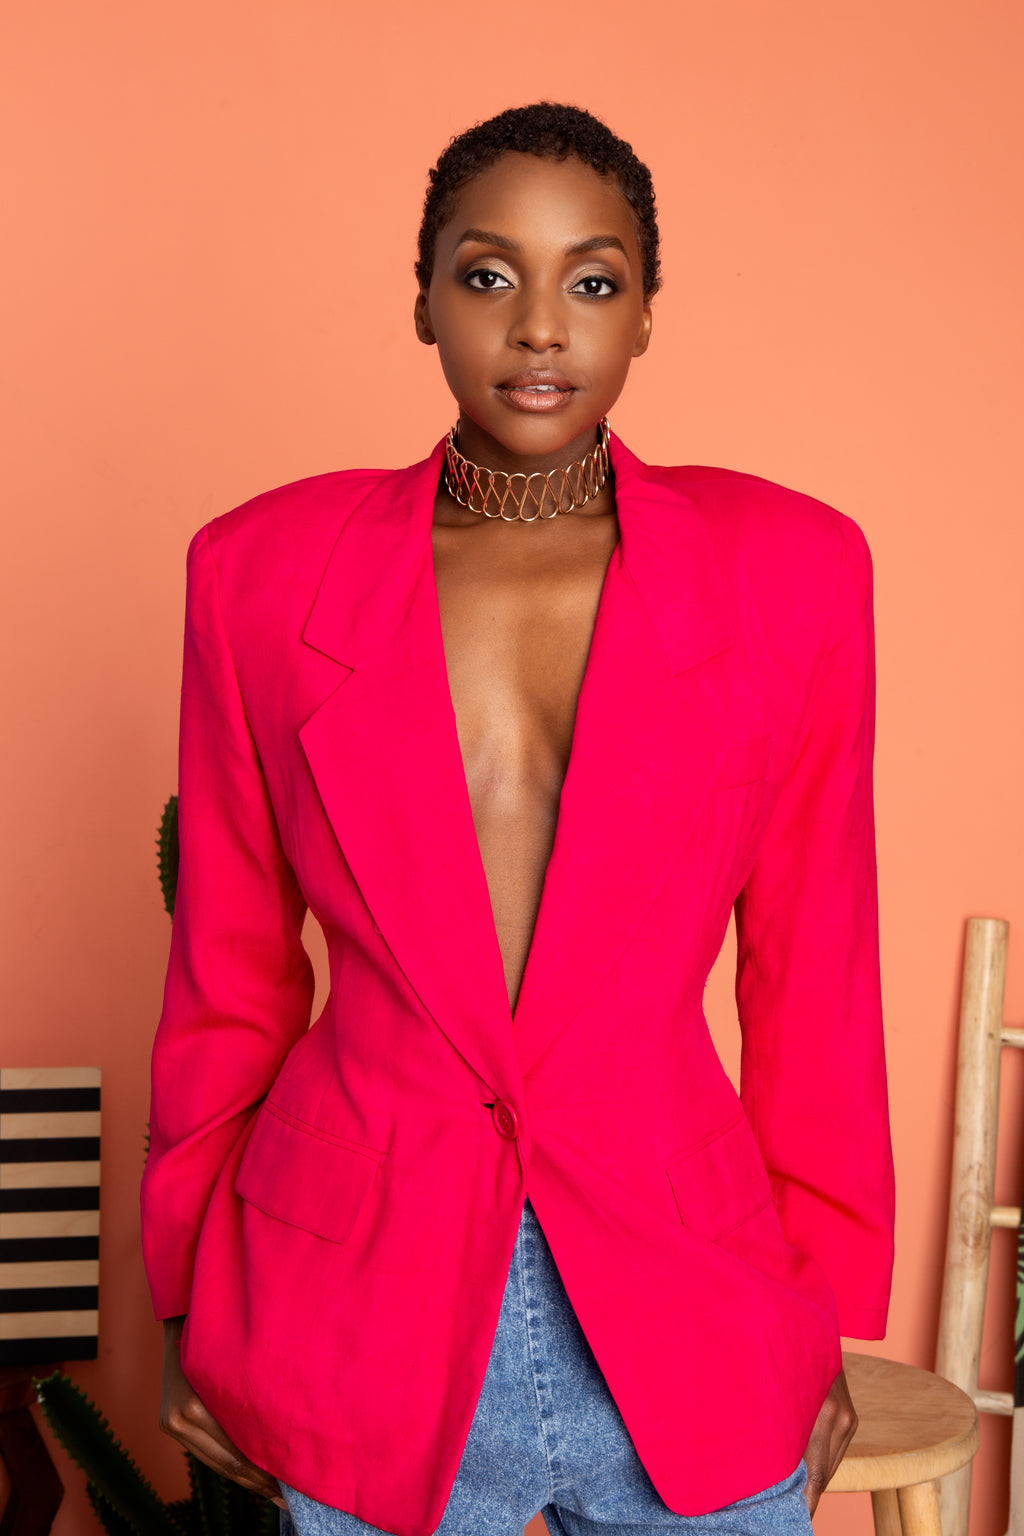 Vintage Highlighter Pink Blazer